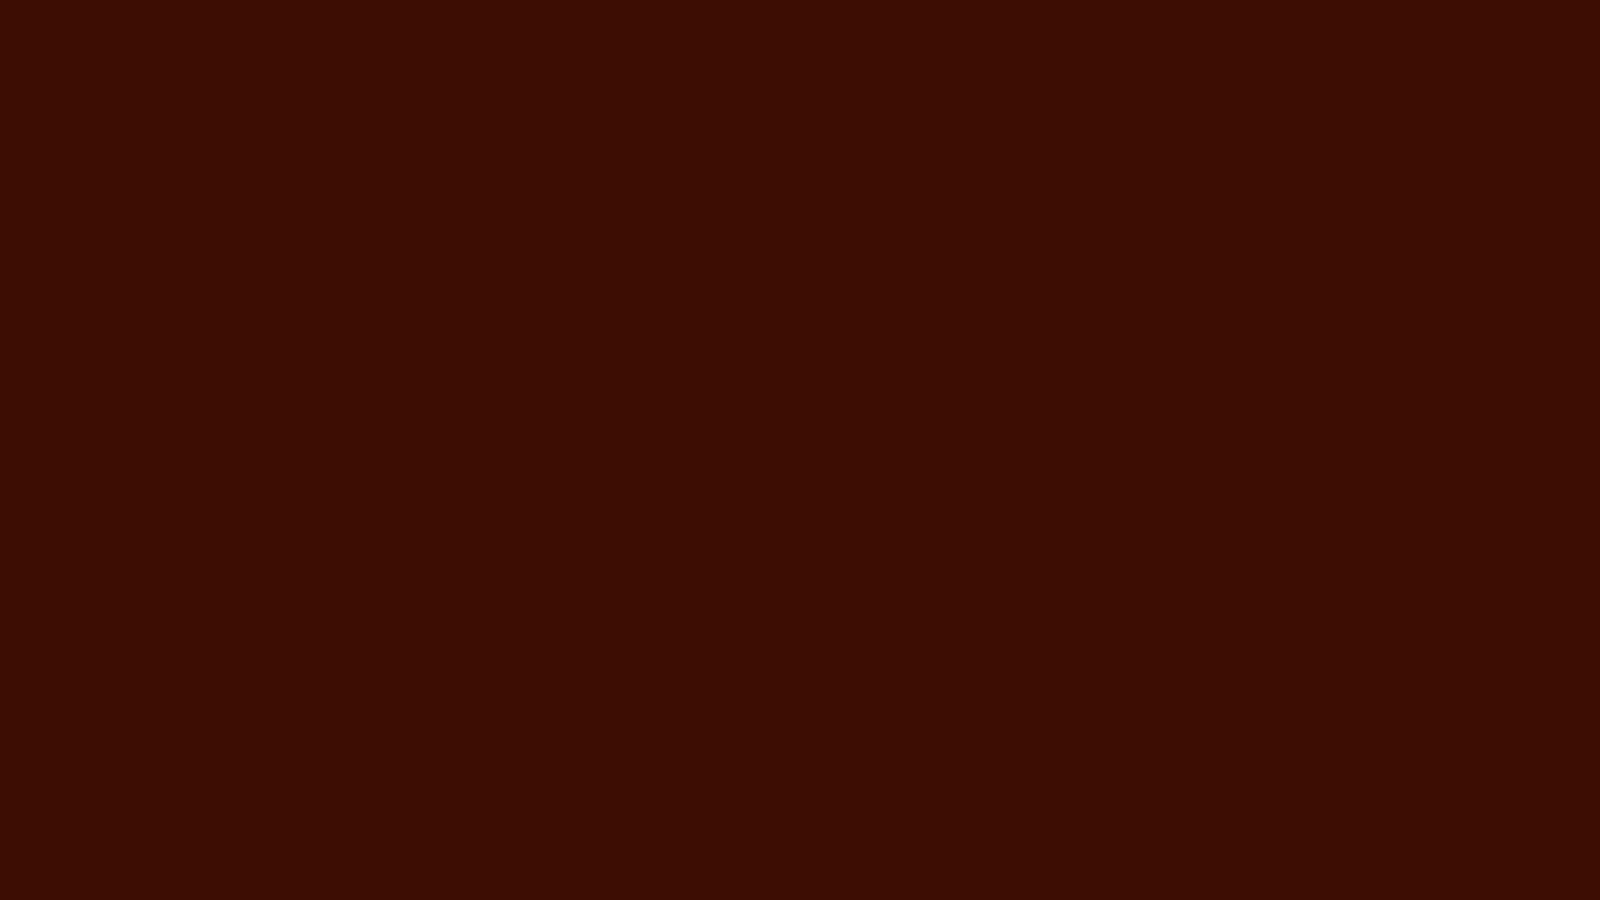 1600x900 Black Bean Solid Color Background